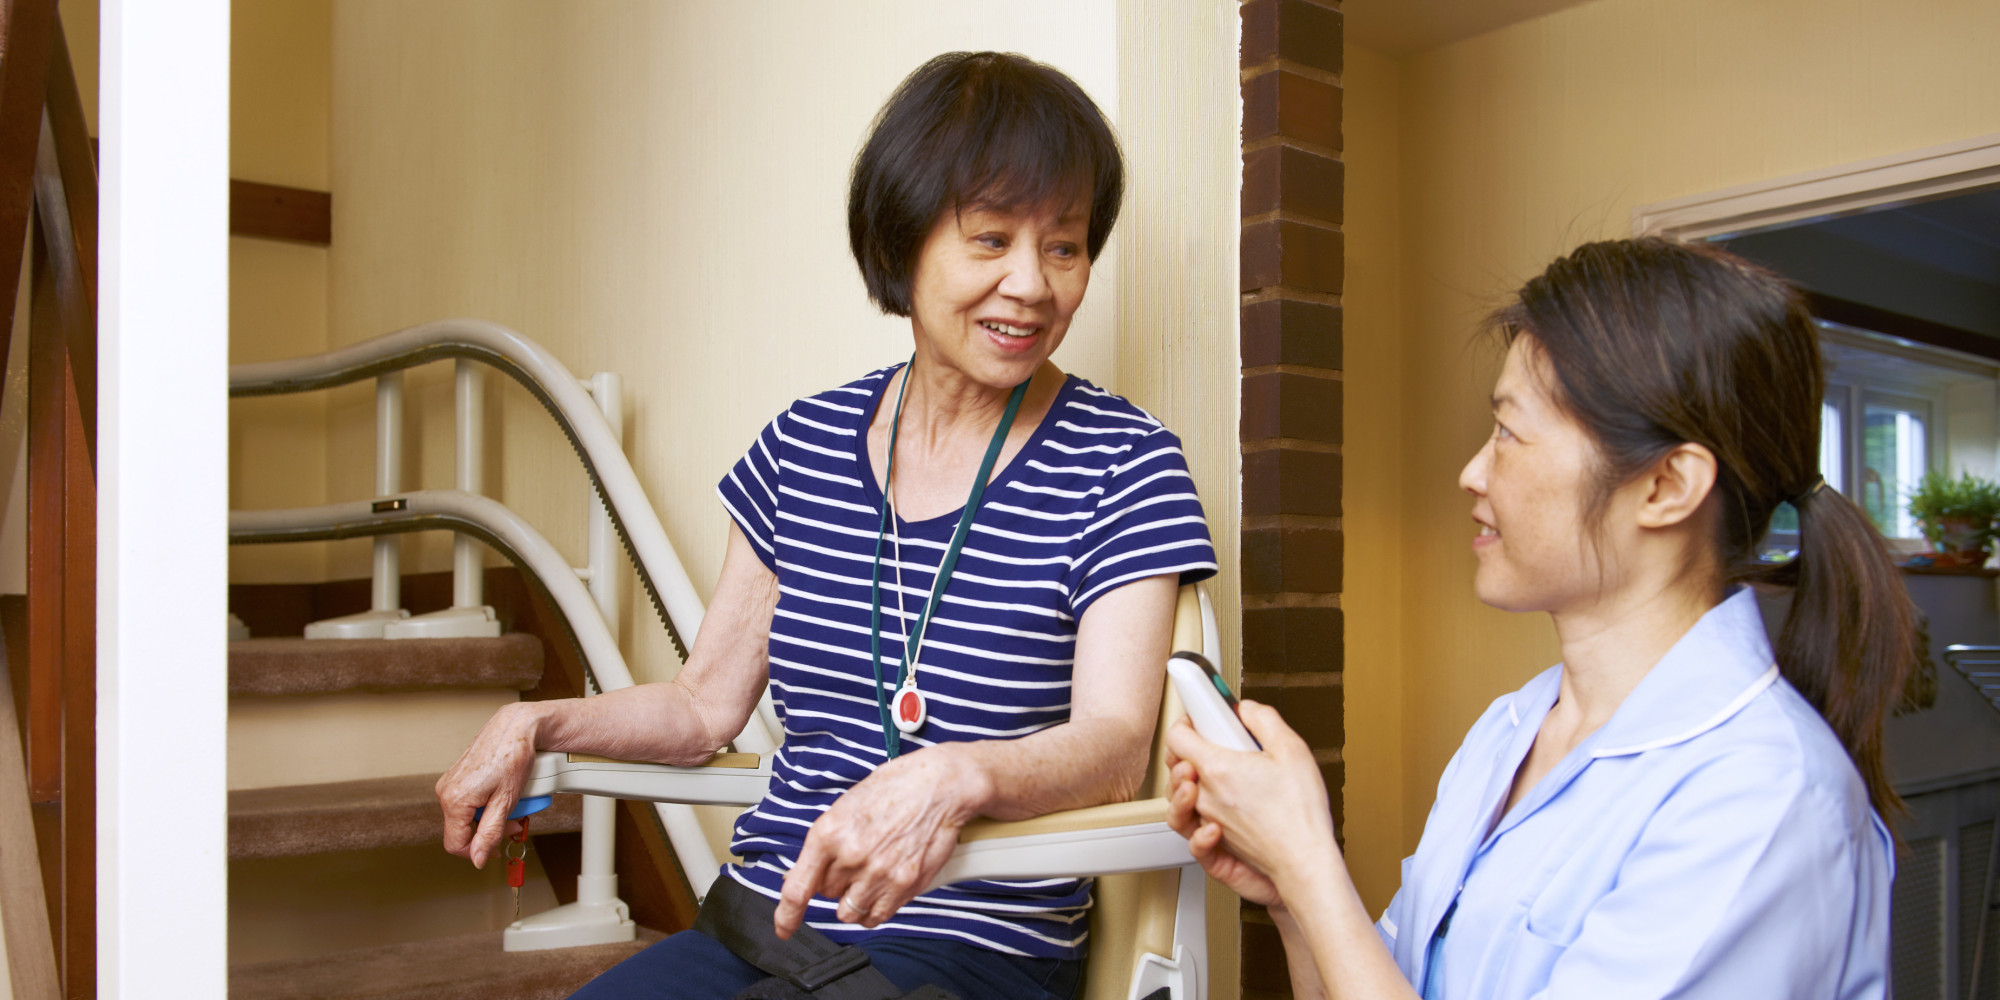 The challenges for a care worker